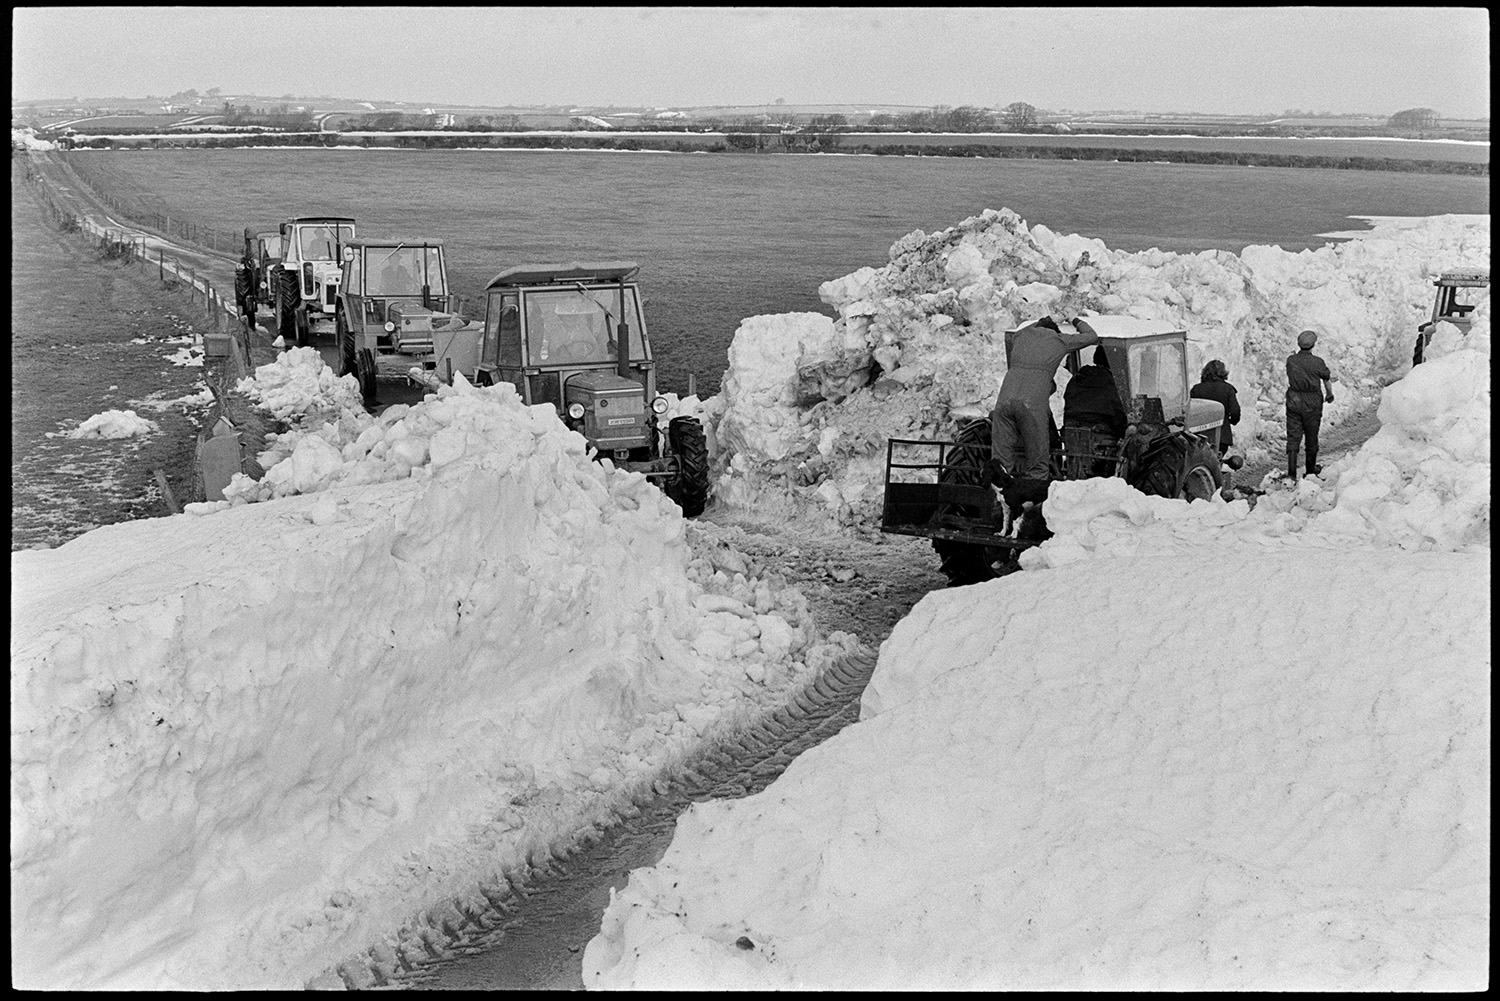 Snow. Tractors carrying milk break through from Roborough to load tanker at Beacon.<br /> [Tractors lining up in a lane waiting to travel along a road recently cleared from snow on Roborough Common, to get their milk to a milk tanker.]